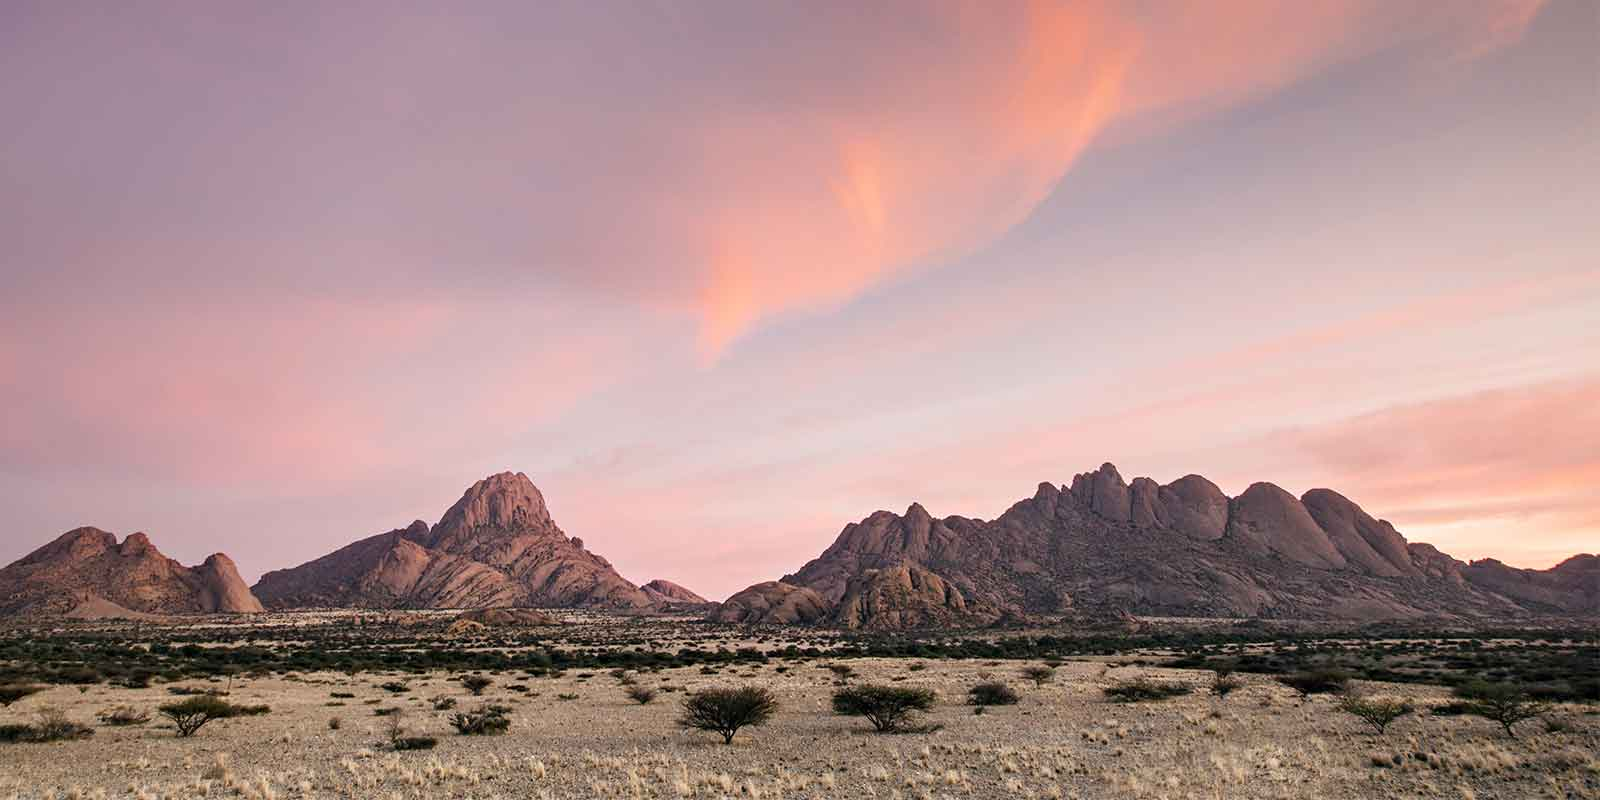 Spitzkoppe at sunrise with red sky